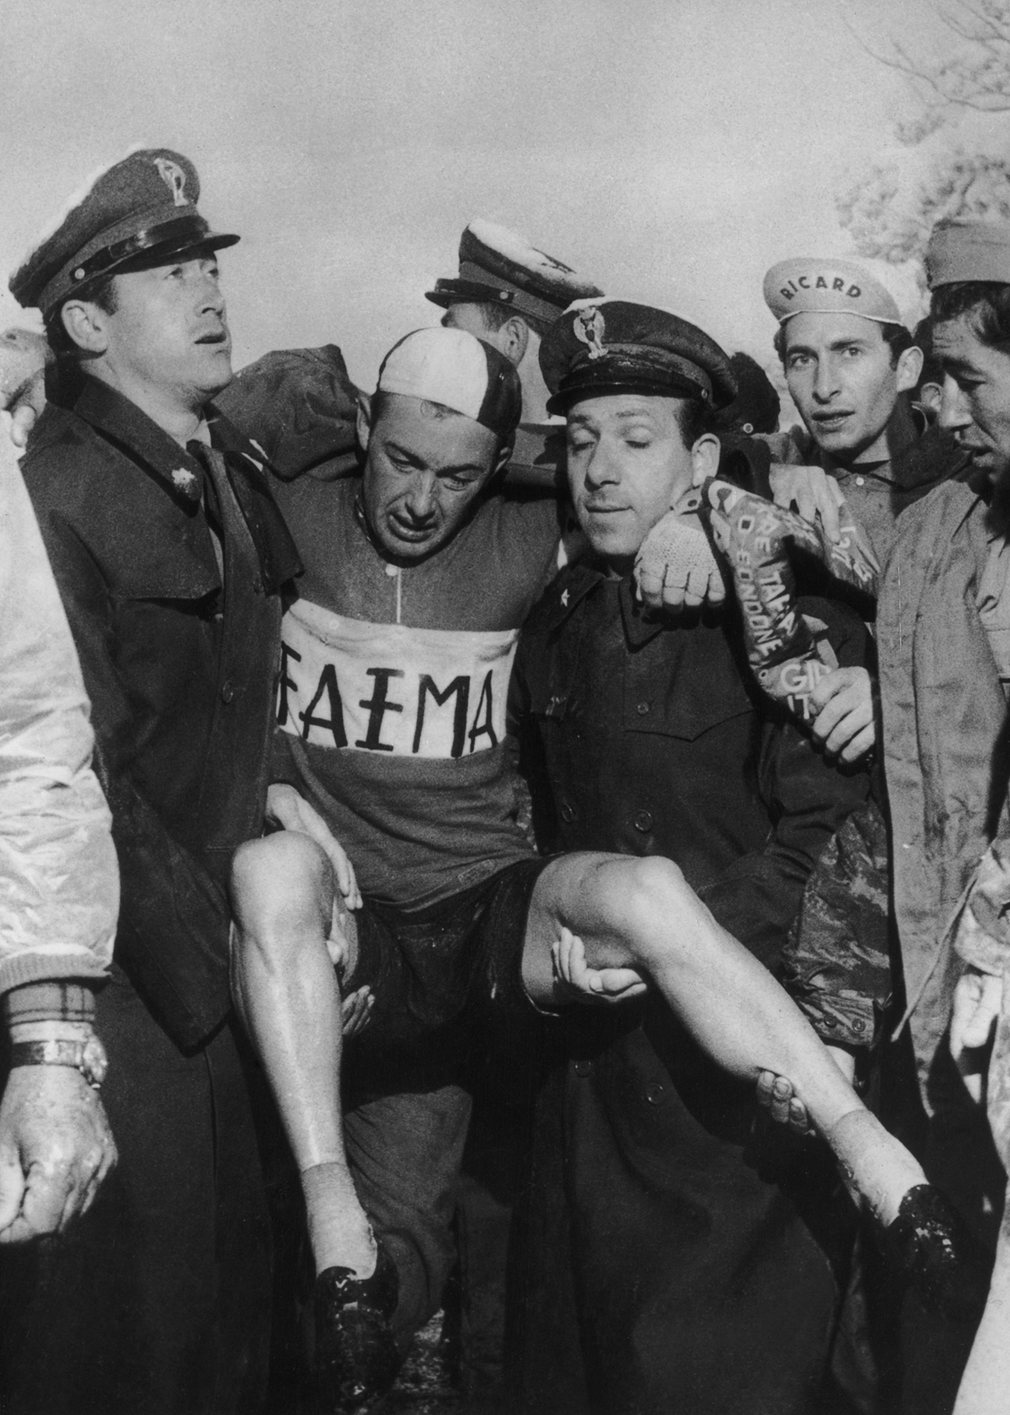 Charly Gaul collapsed after winning the Dolomites stage in 1956. Rain, wind and heavy snow forced half of the riders to abandon the stage. Gaul eventually went on to win the whole Tour.